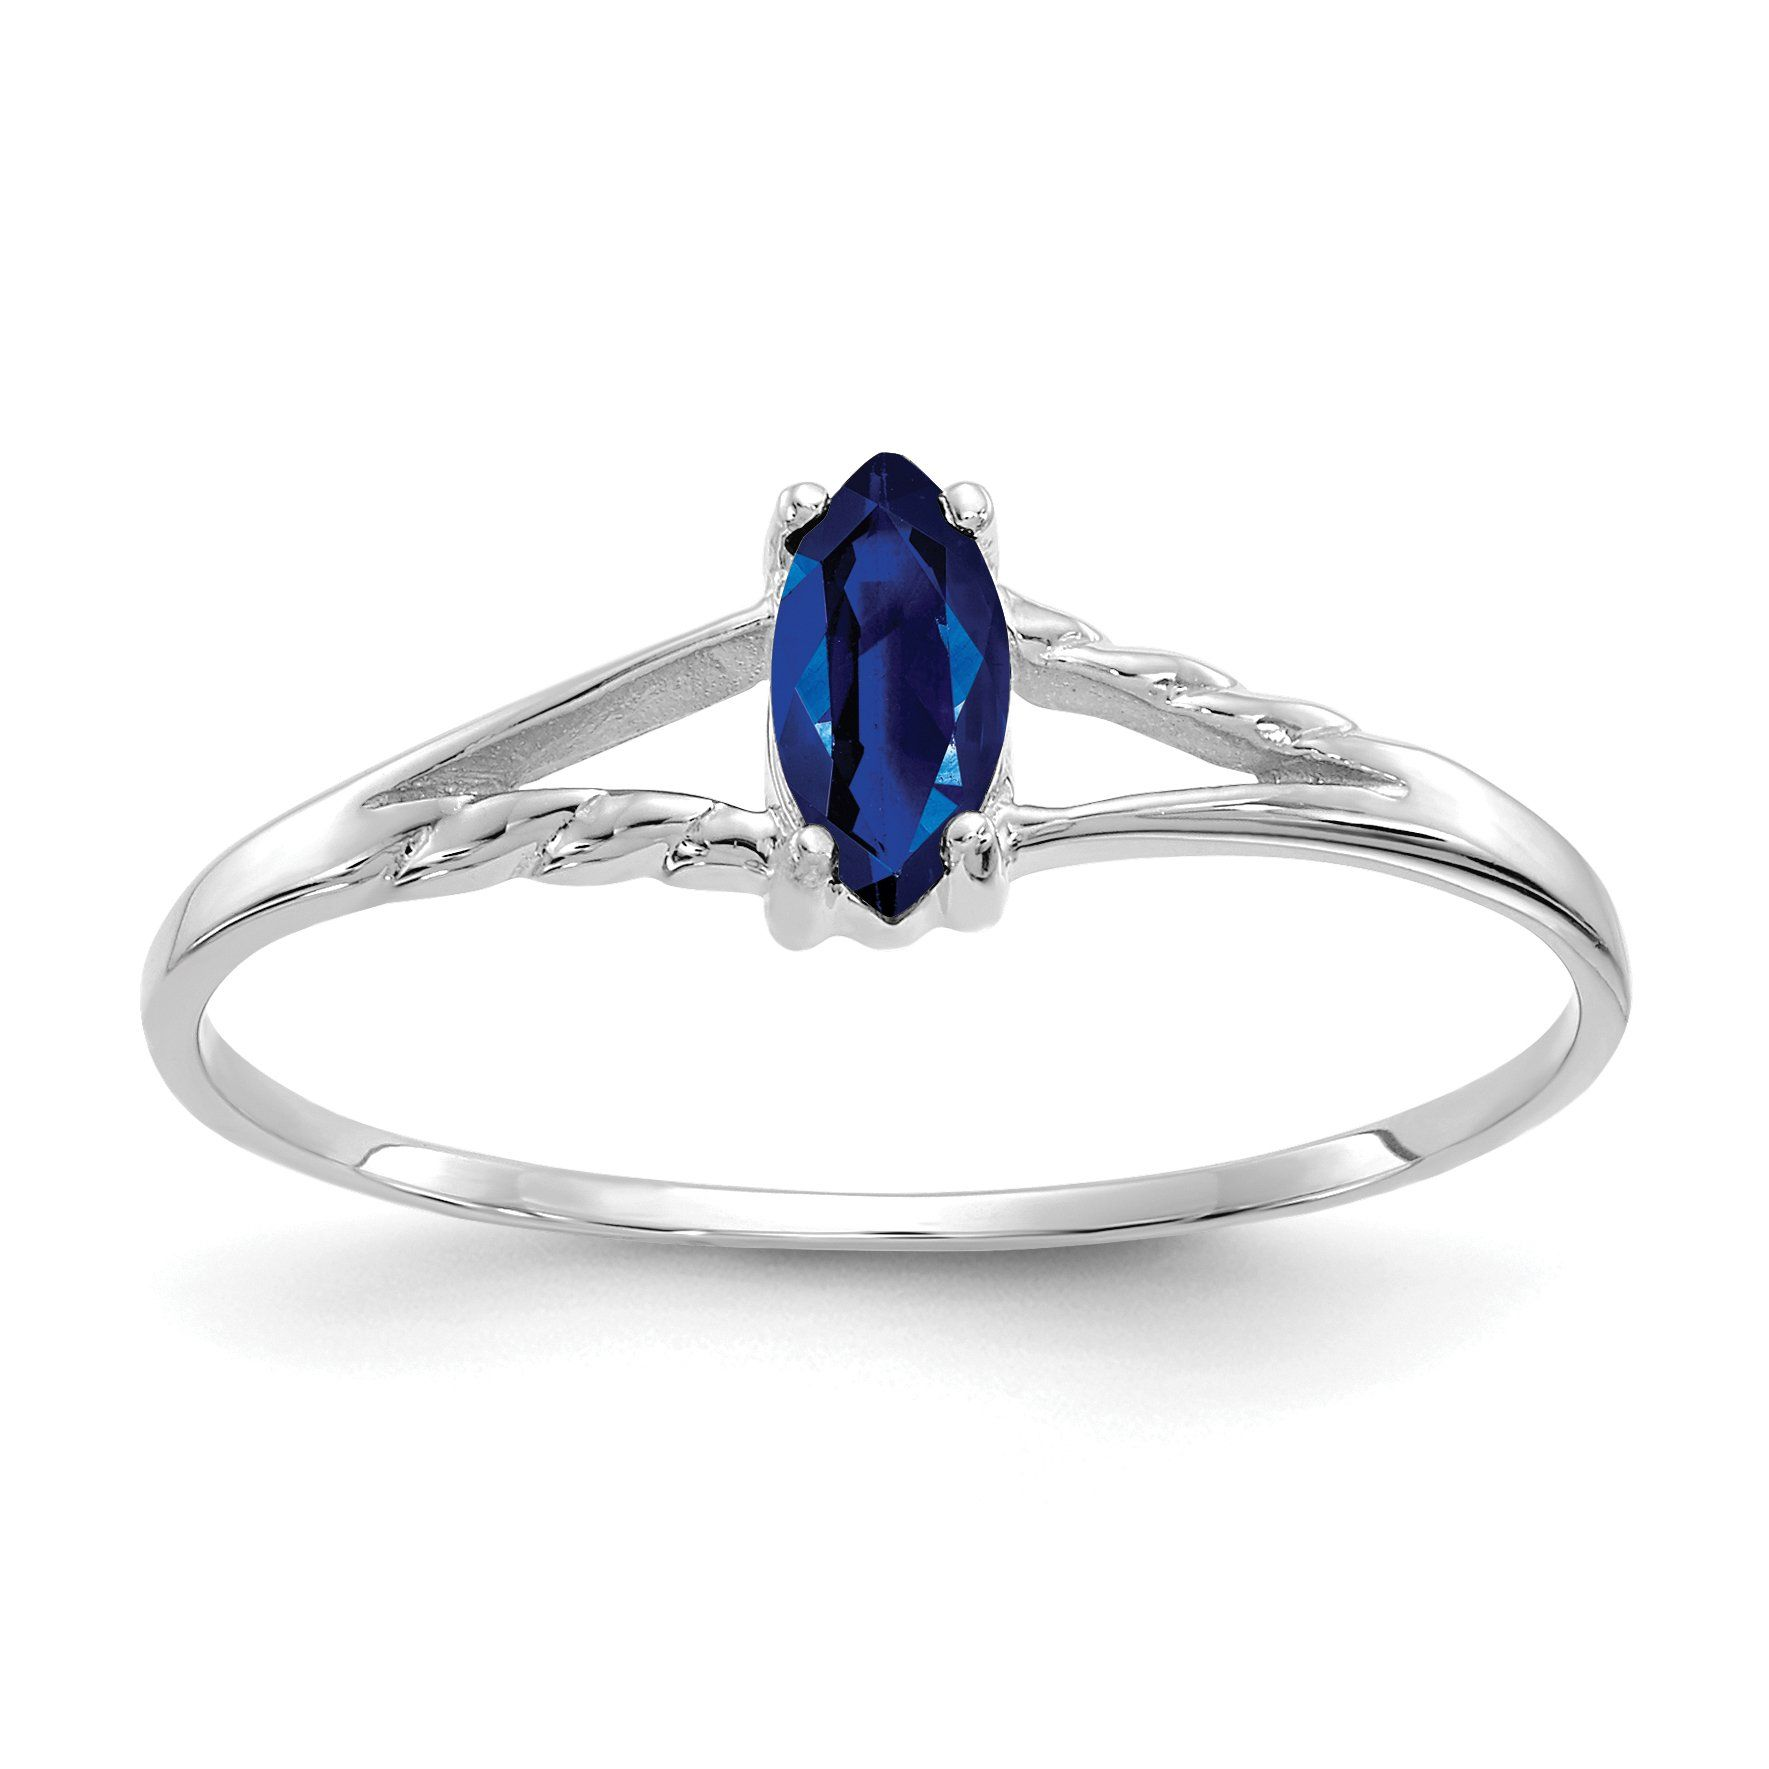 10k White Gold Polished Geniune Sapphire Birthstone Ring 10k White Gold Polished Geniune Sapphire Birthstone Ring Sapphire Birthstone White Gold Sapphire Ring White Gold